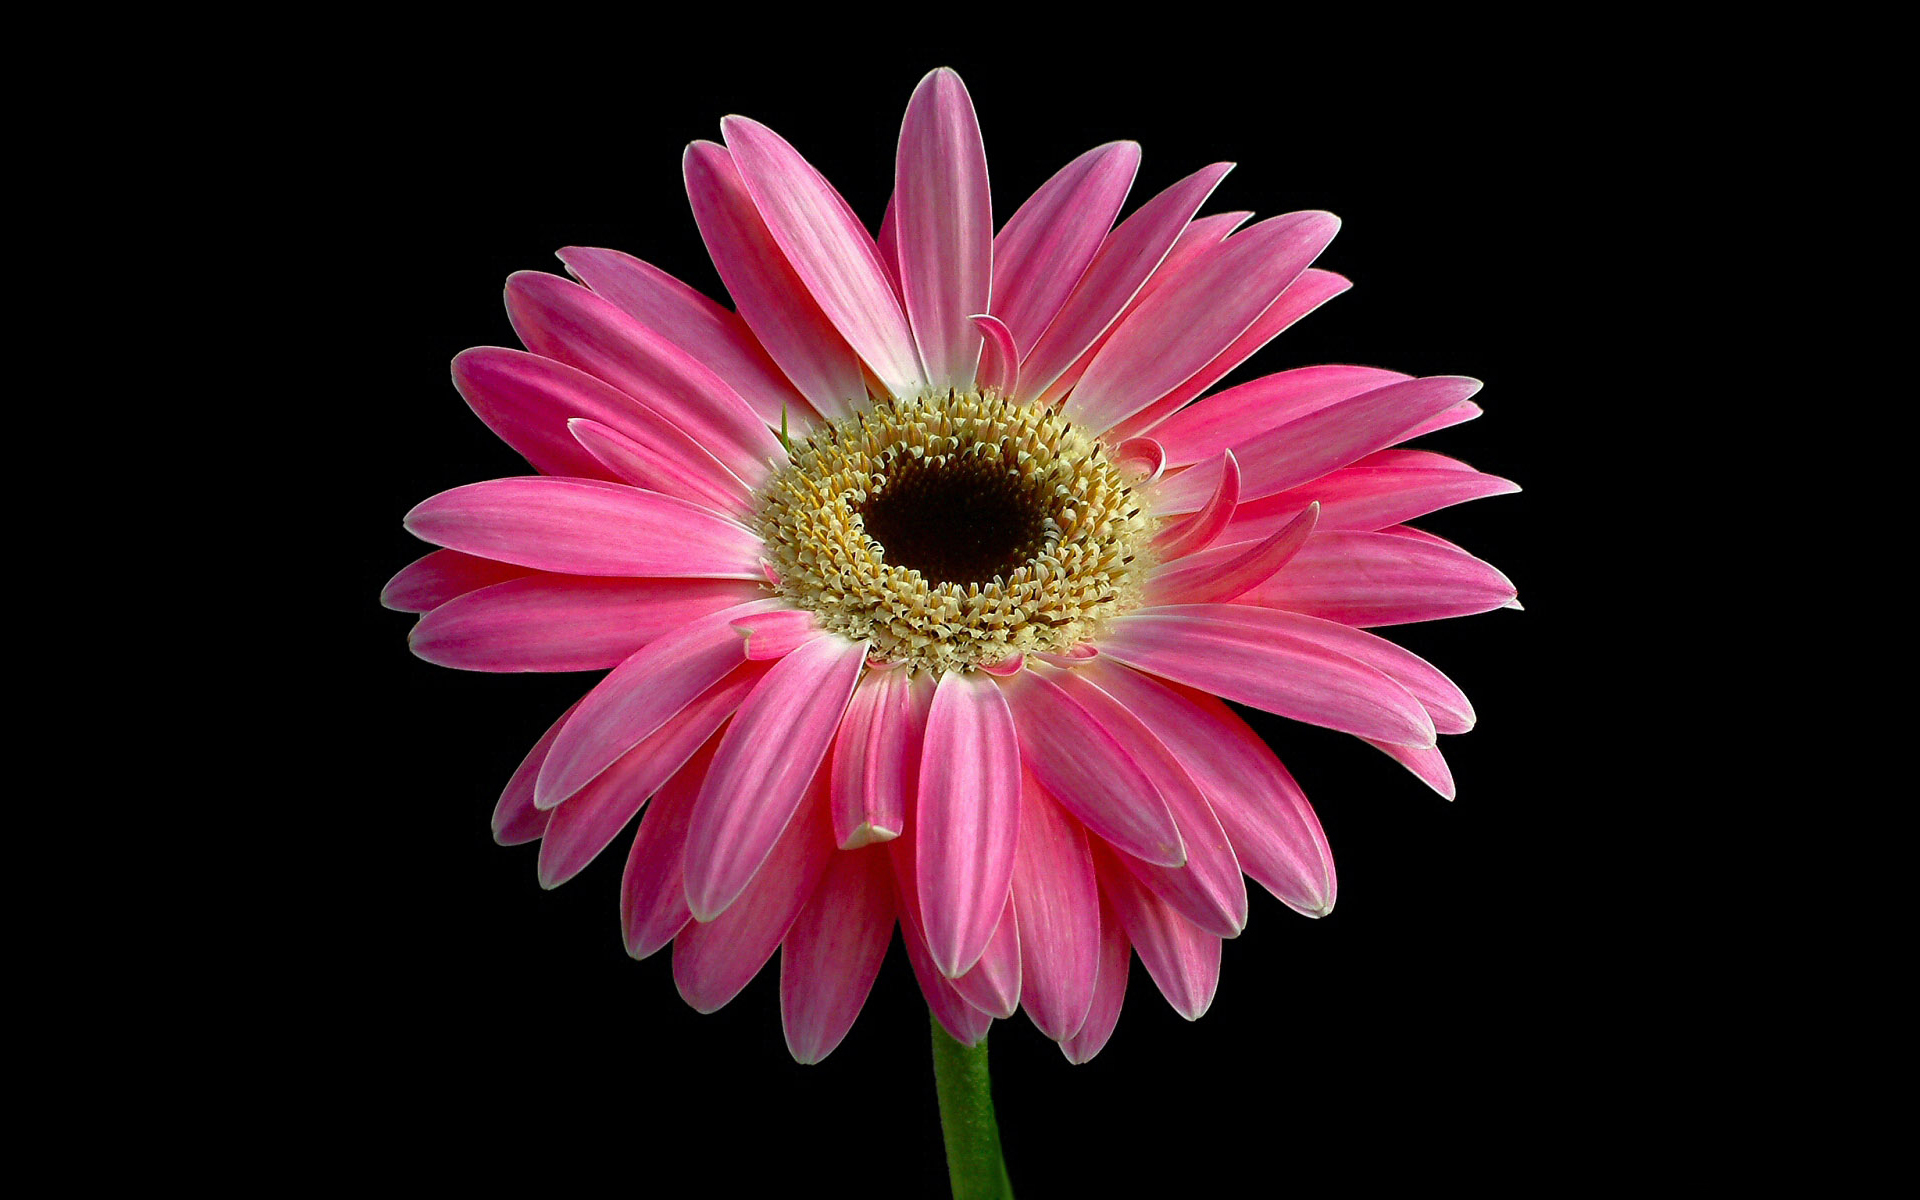 The Most Beautiful Pink Flower Wallpaper | HD Wallpapers